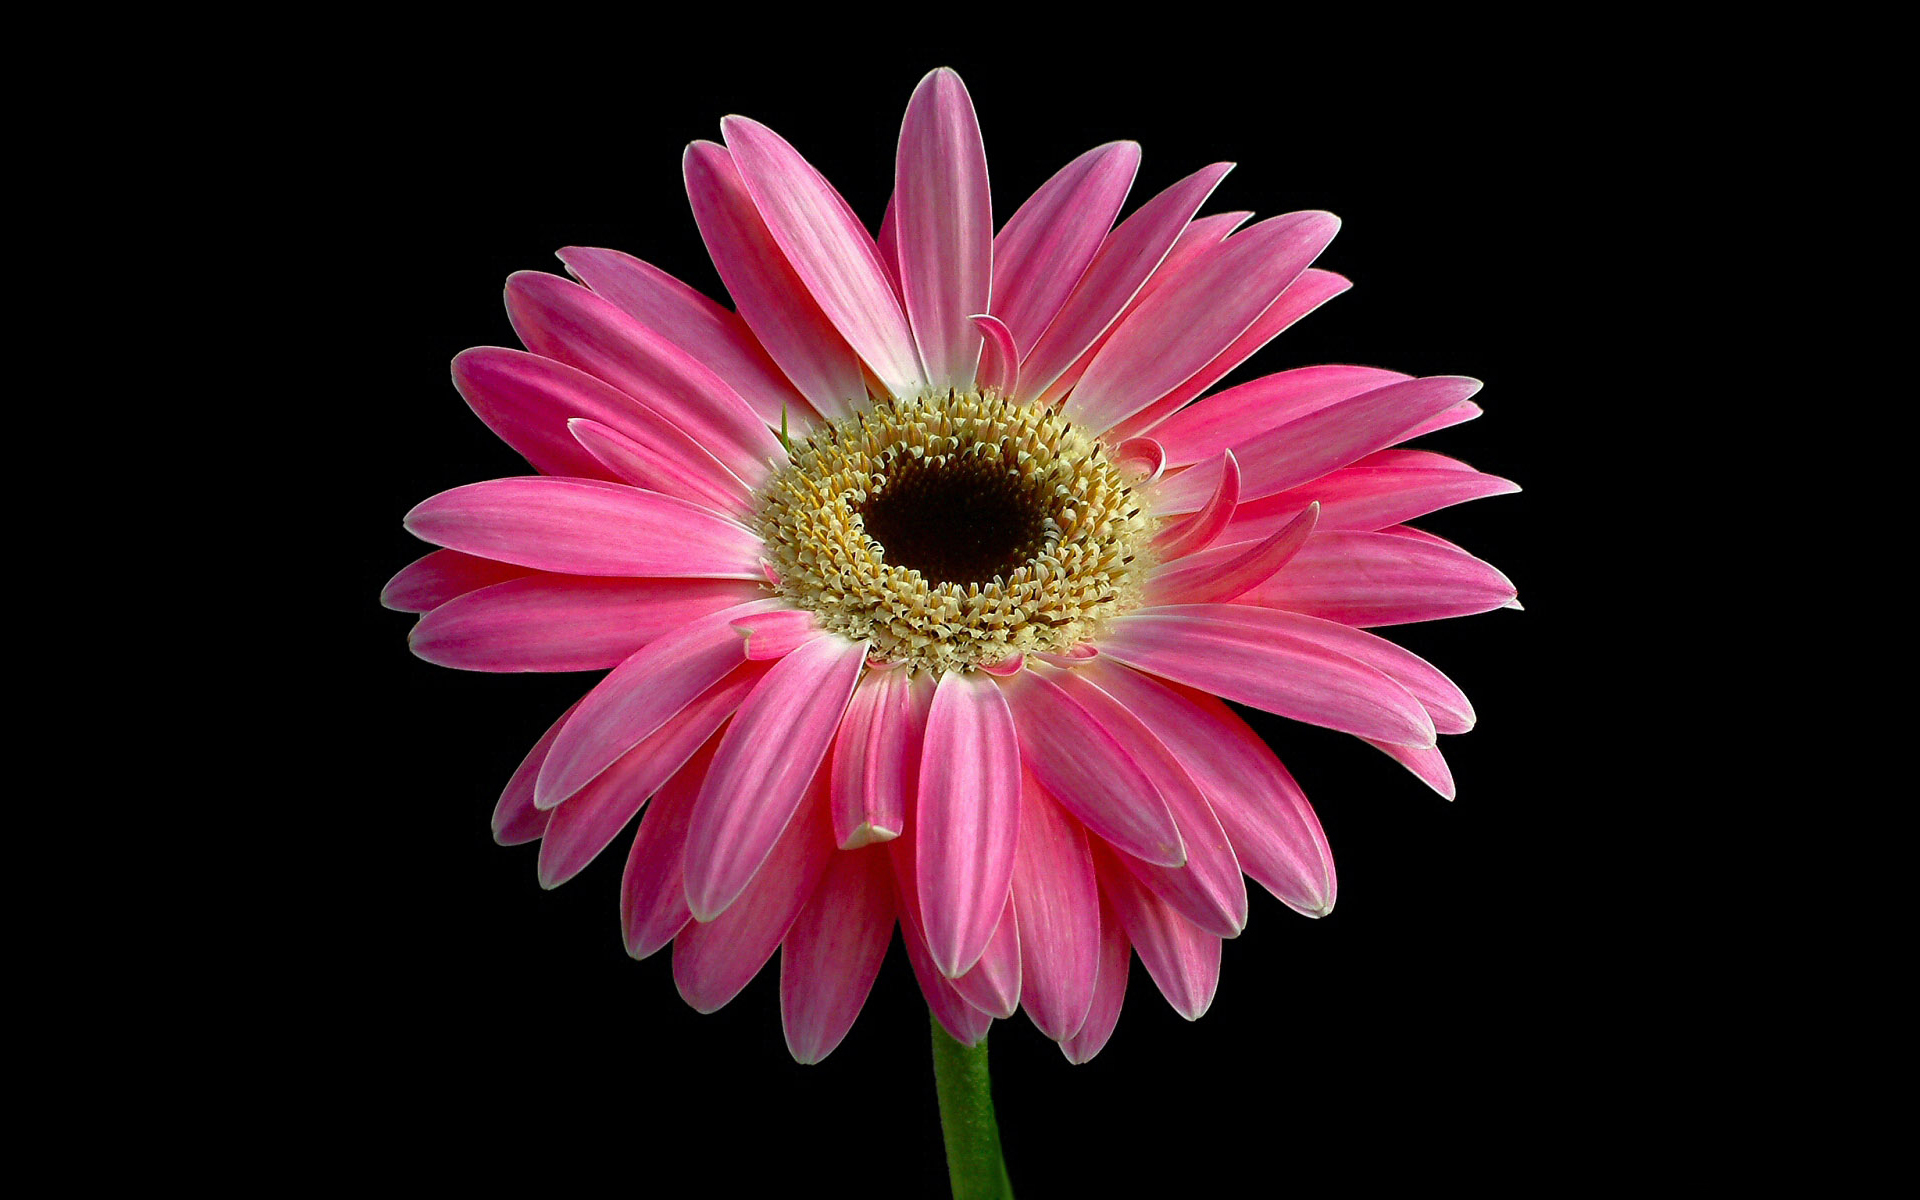 The Most Beautiful Pink Flower Wallpaper | HD Wallpapers